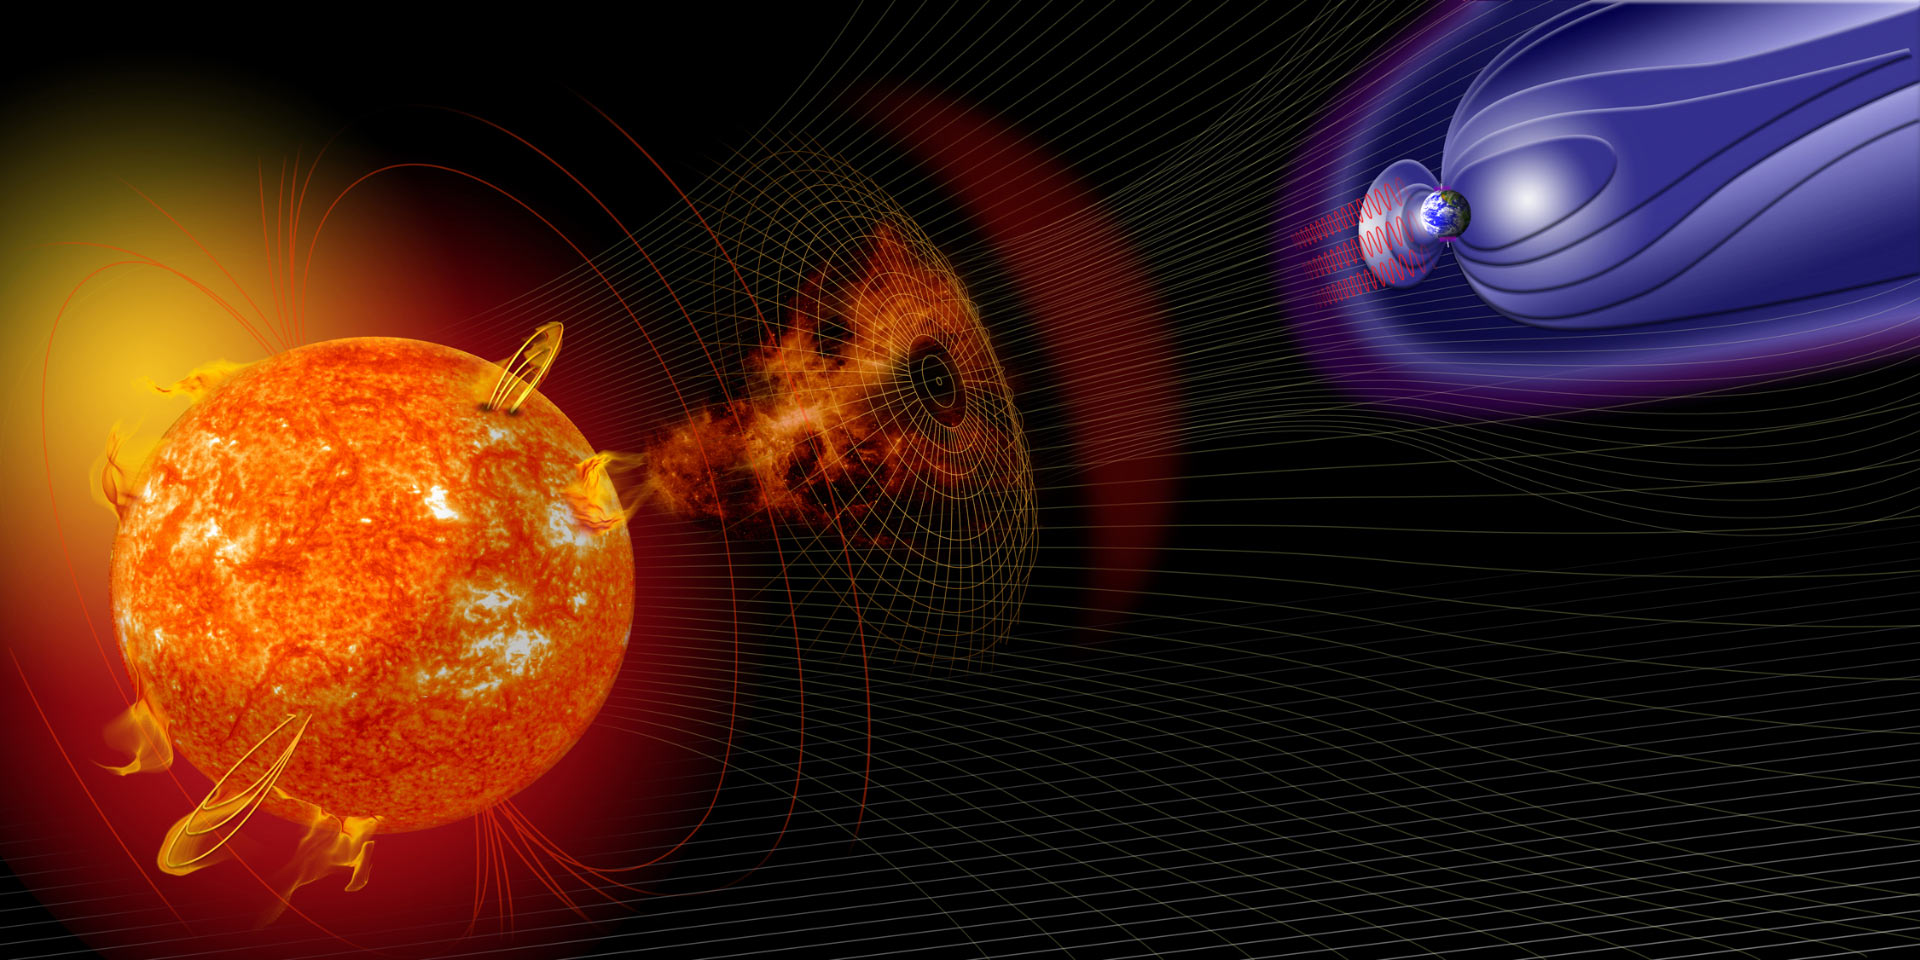 An artist's illustration of events on the Sun changing the conditions in near Earth space. Image credit NASA